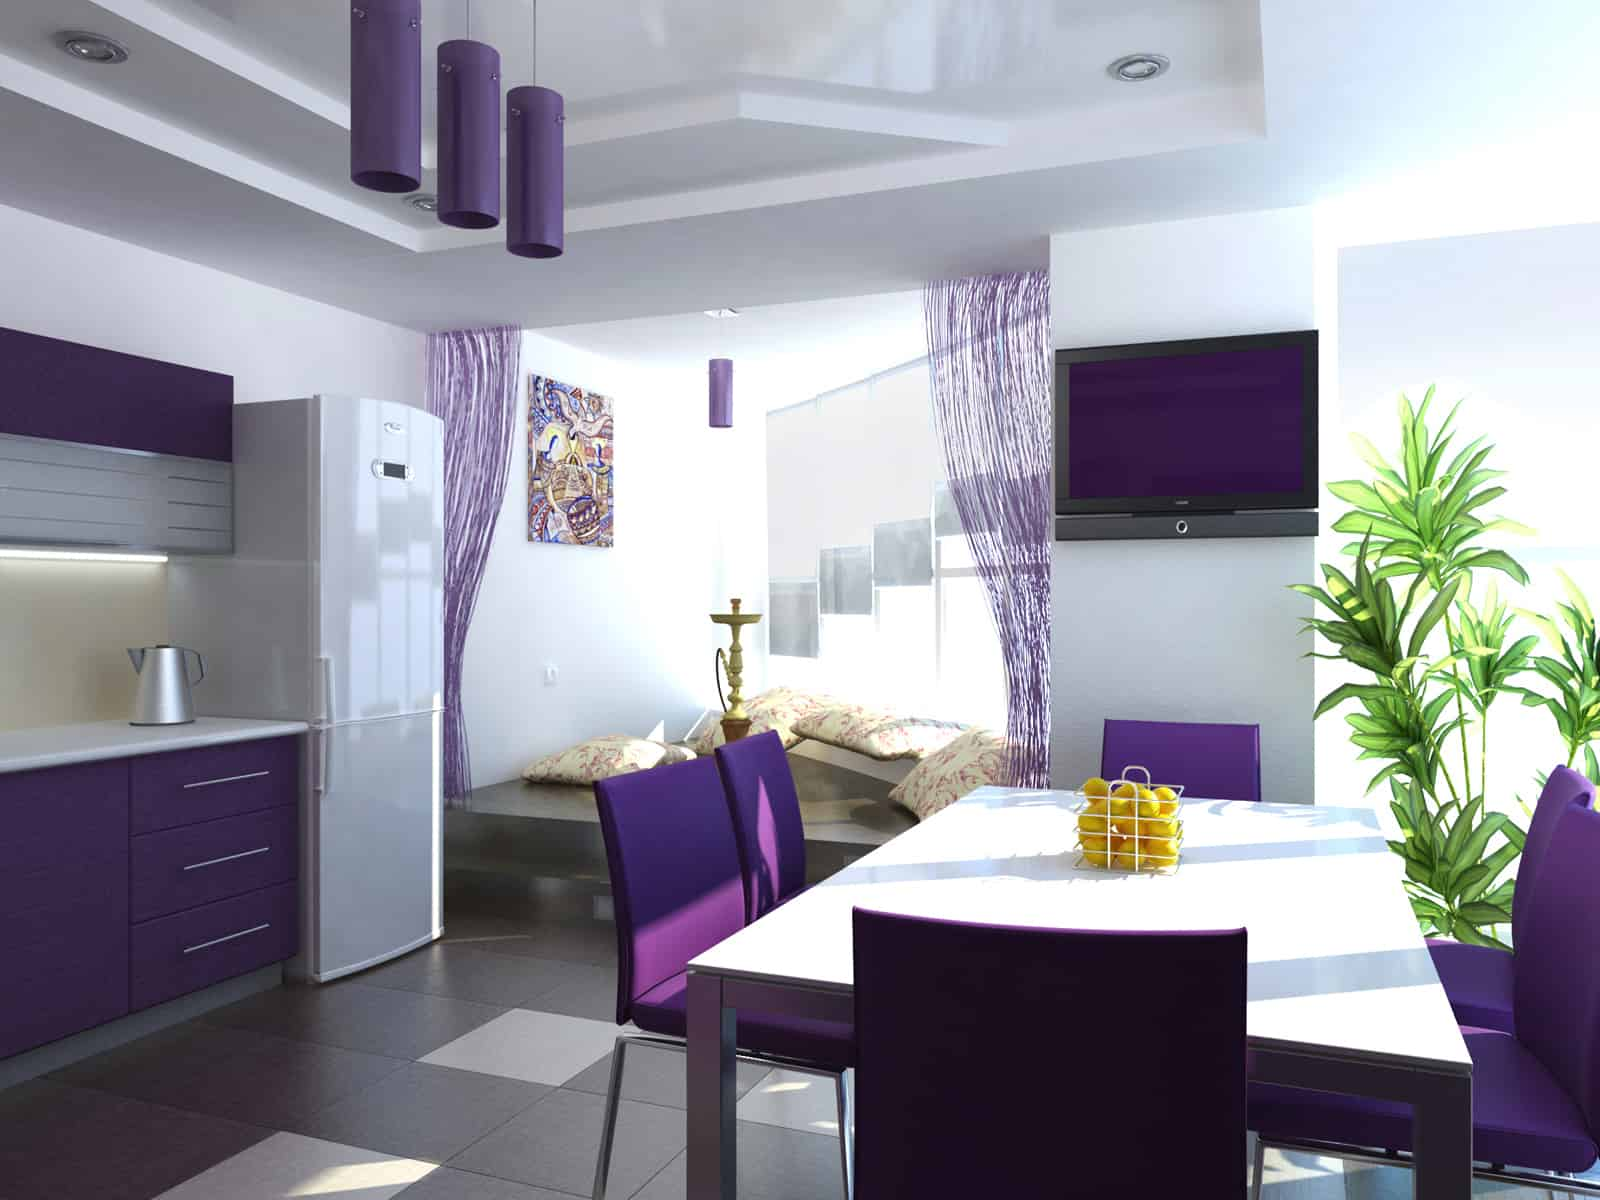 Interior design trends 2017 purple kitchen house interior for Home designer interiors 2017